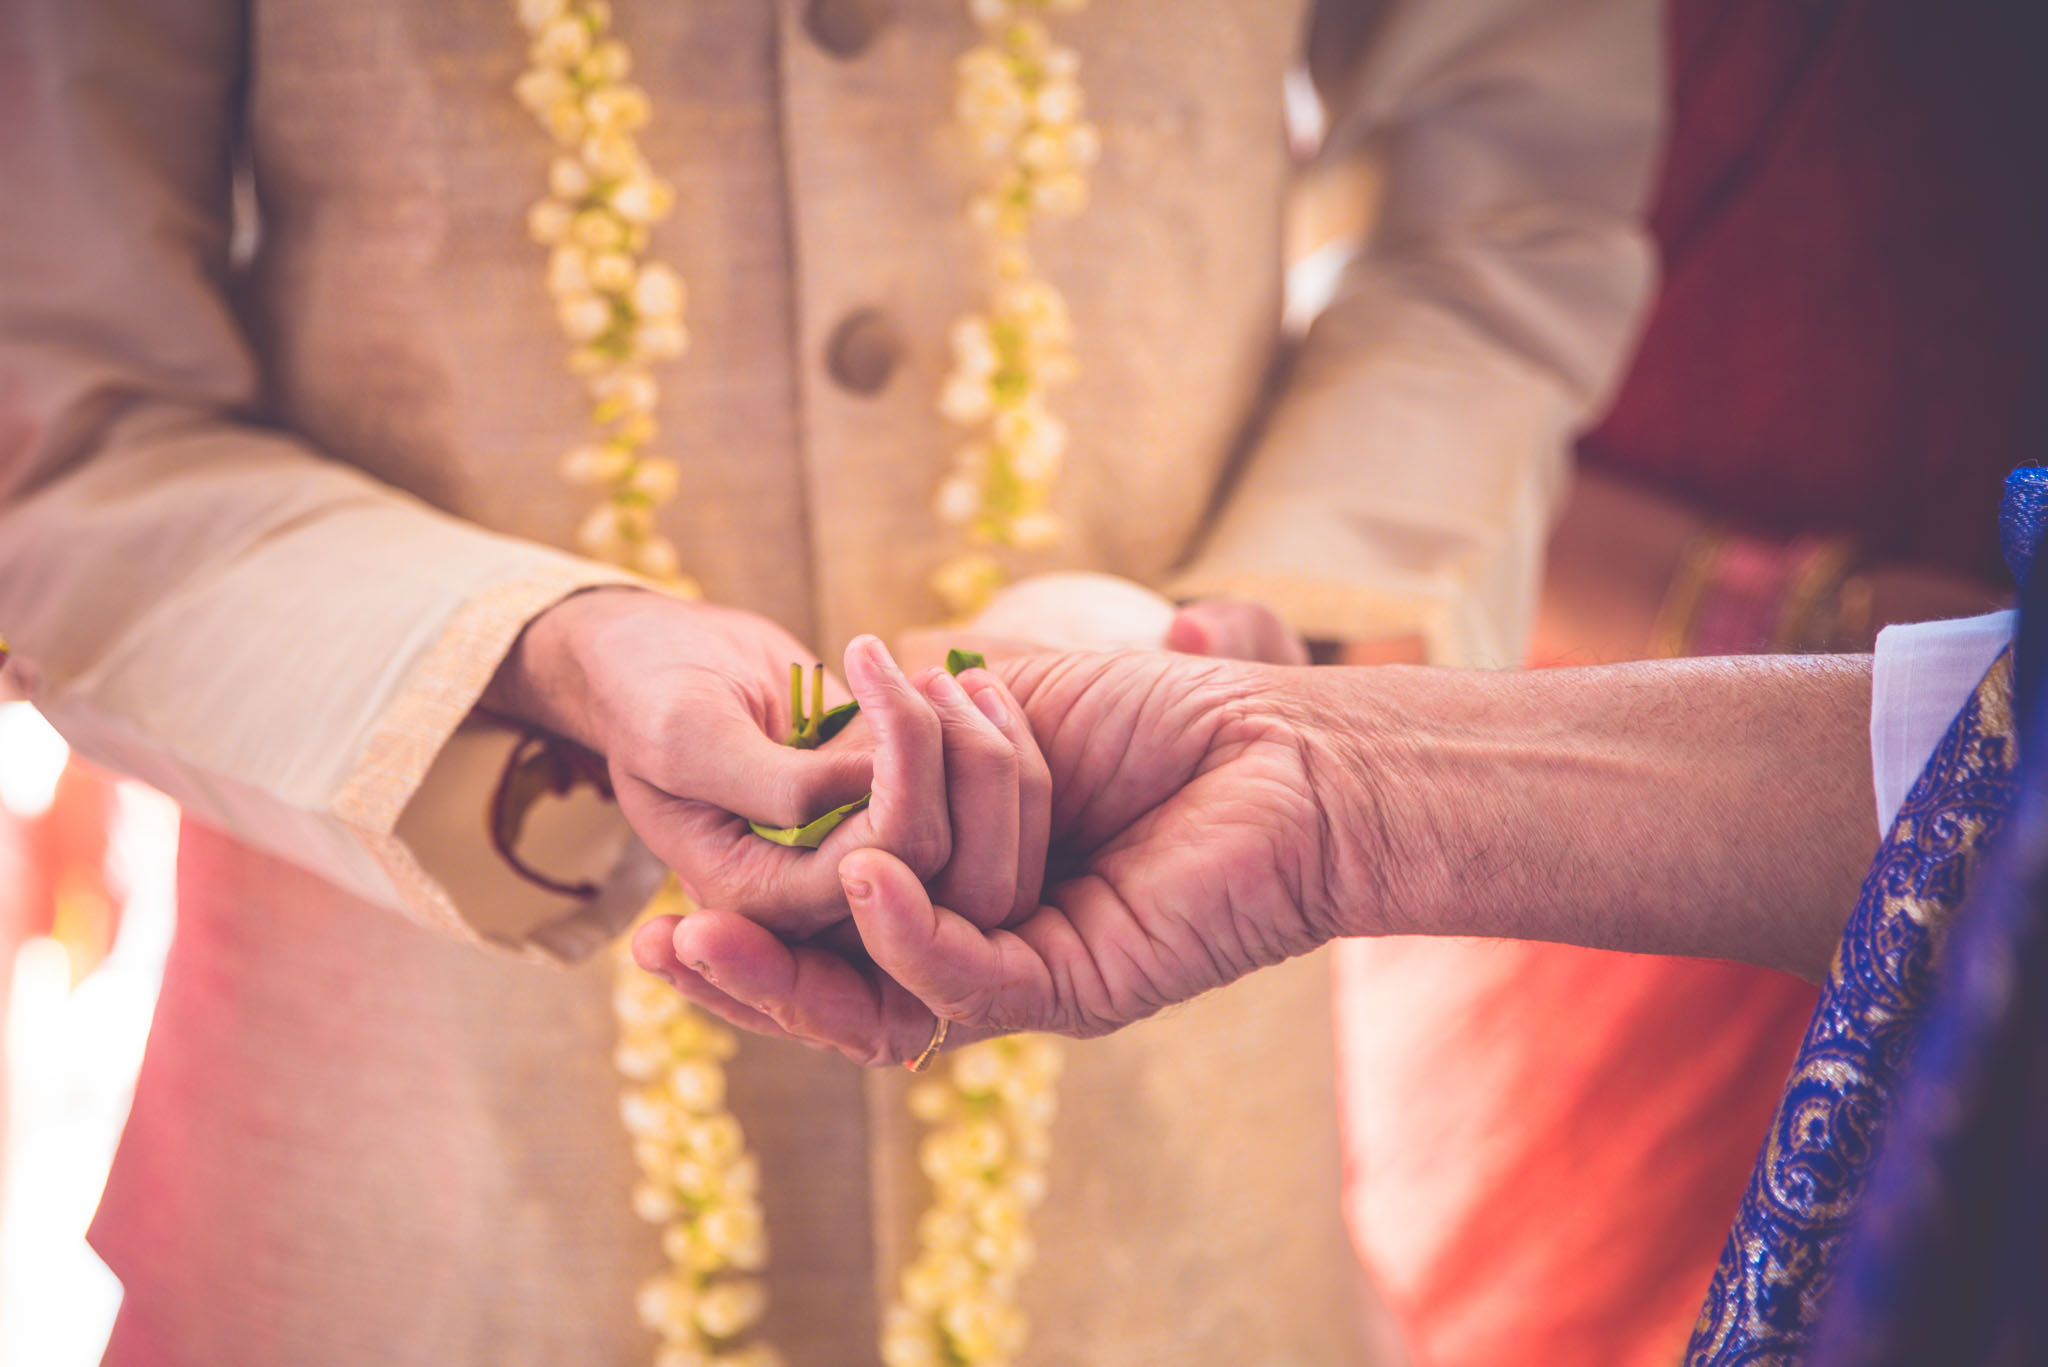 WhatKnot-Candid-Wedding-Photography-Mumbai-Bangalore-138